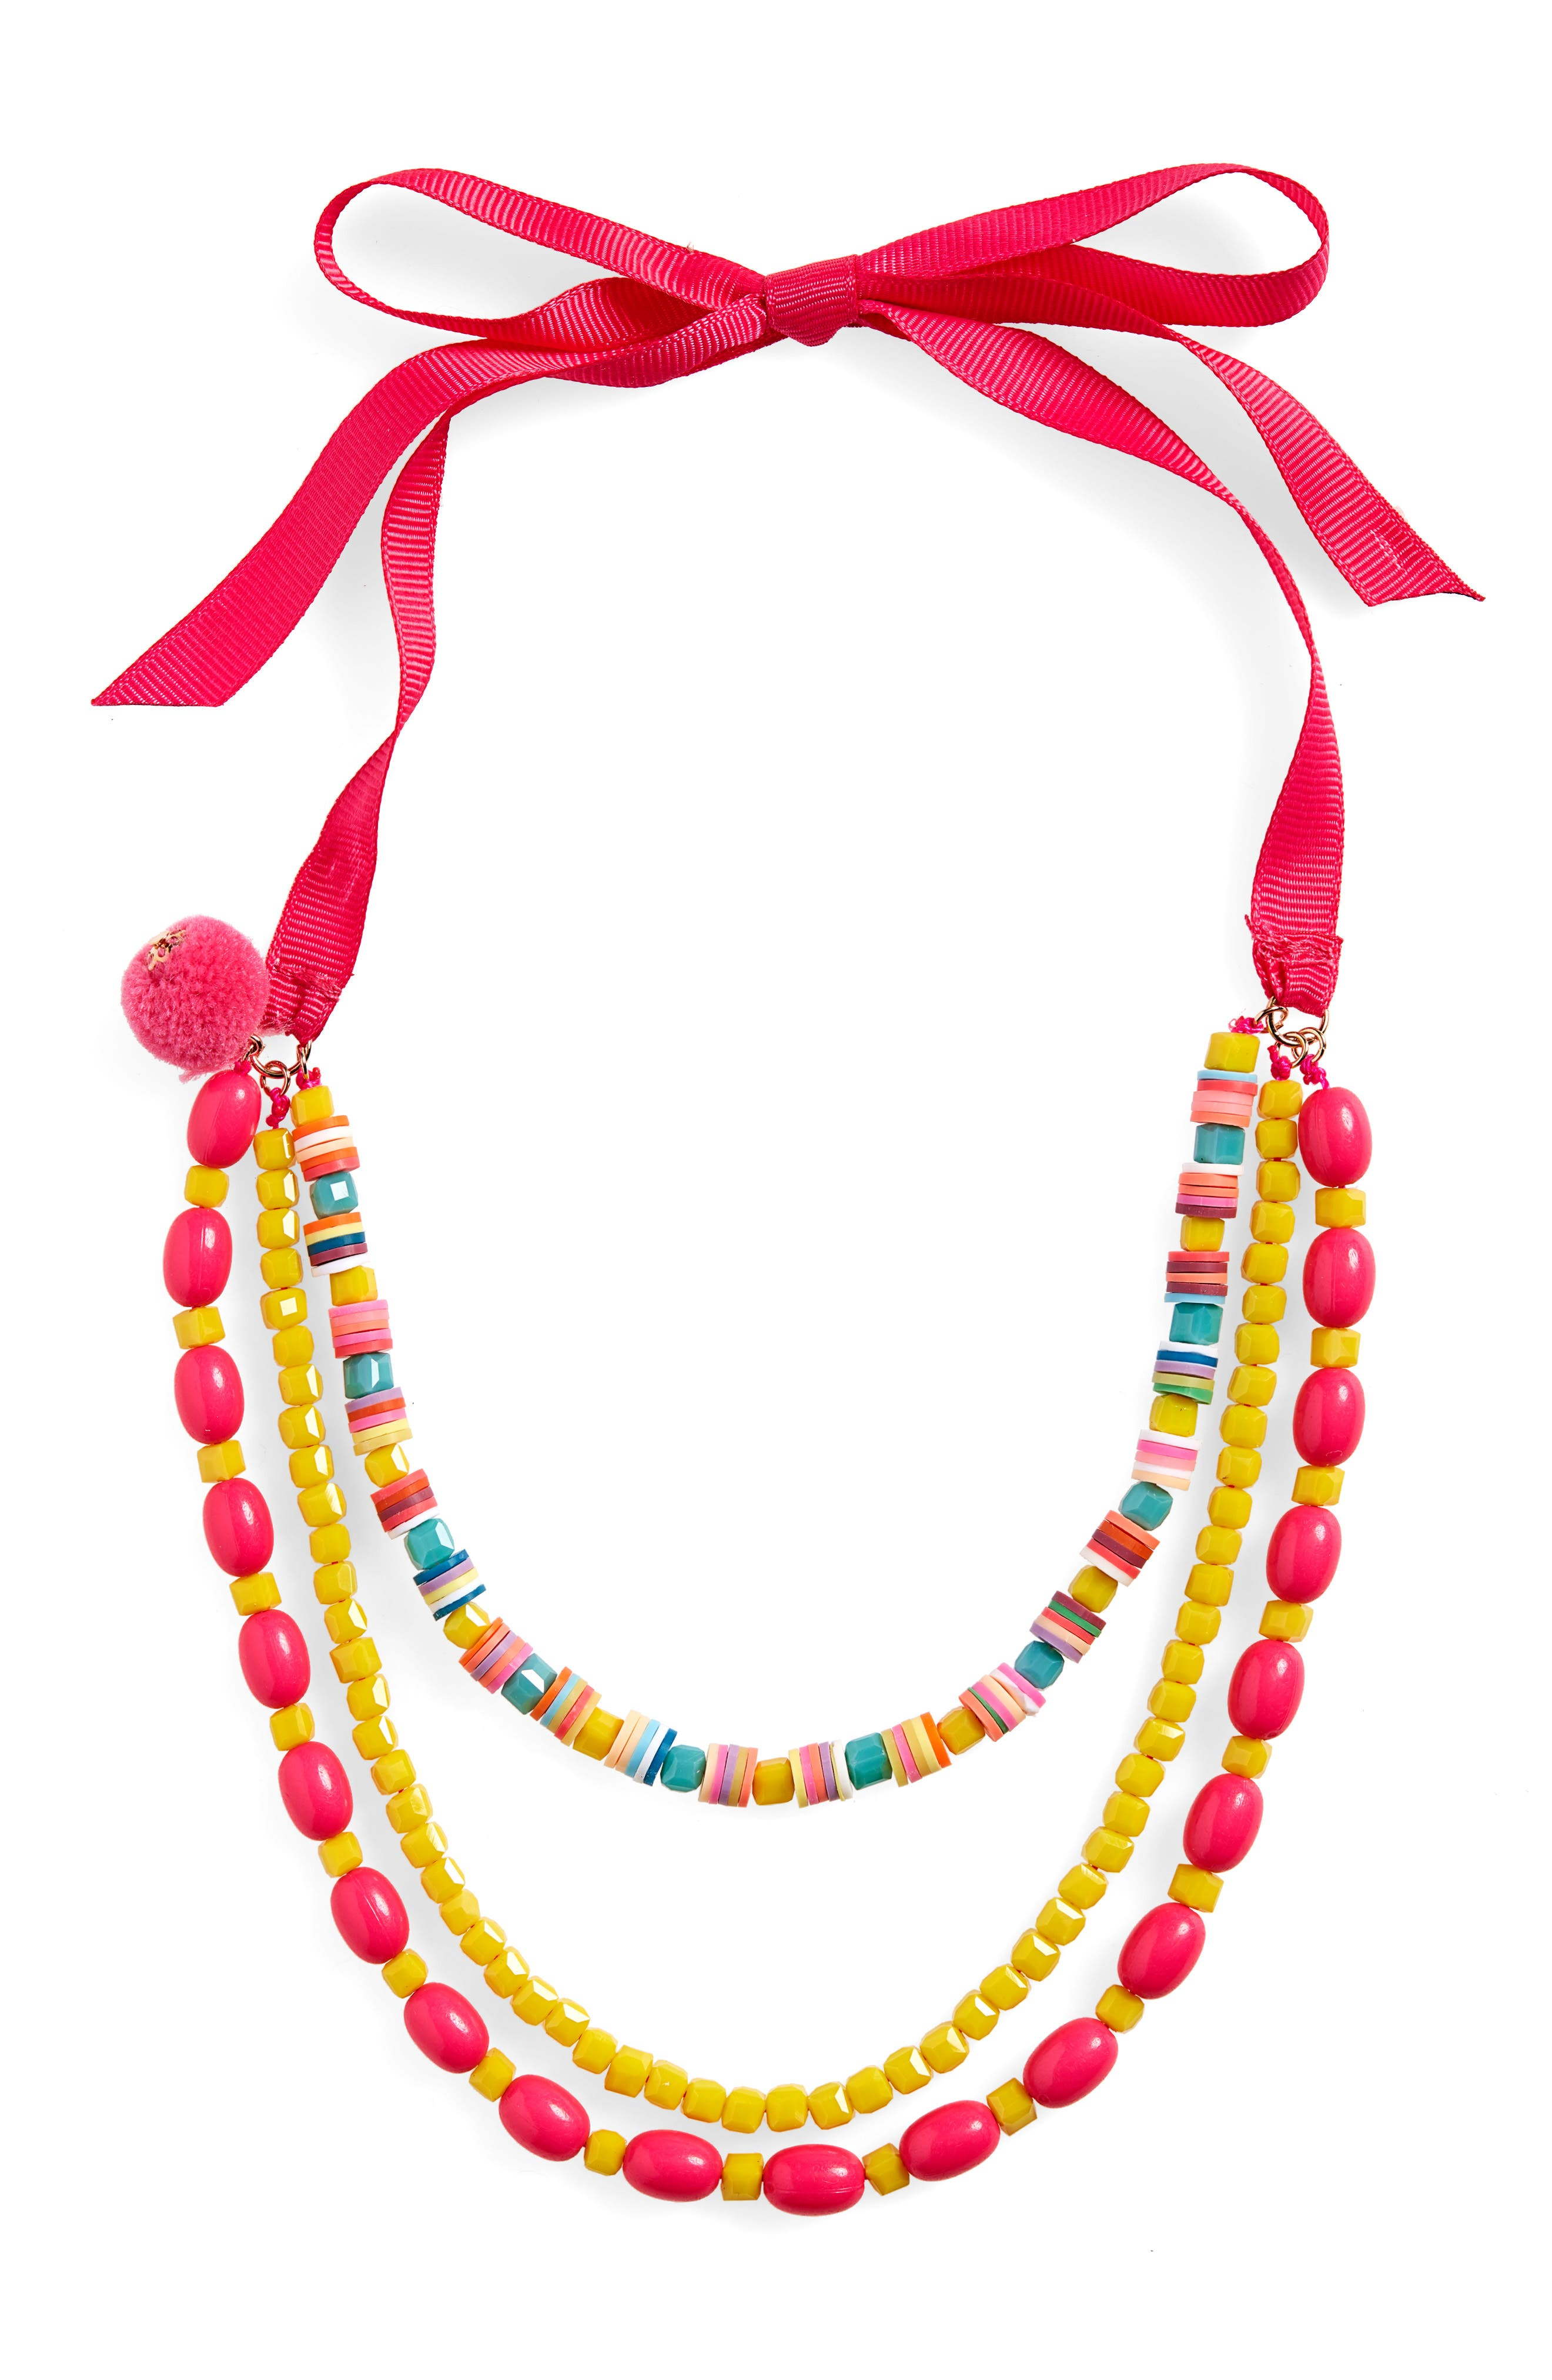 Layered Beaded Necklace,                             Main thumbnail 1, color,                             650